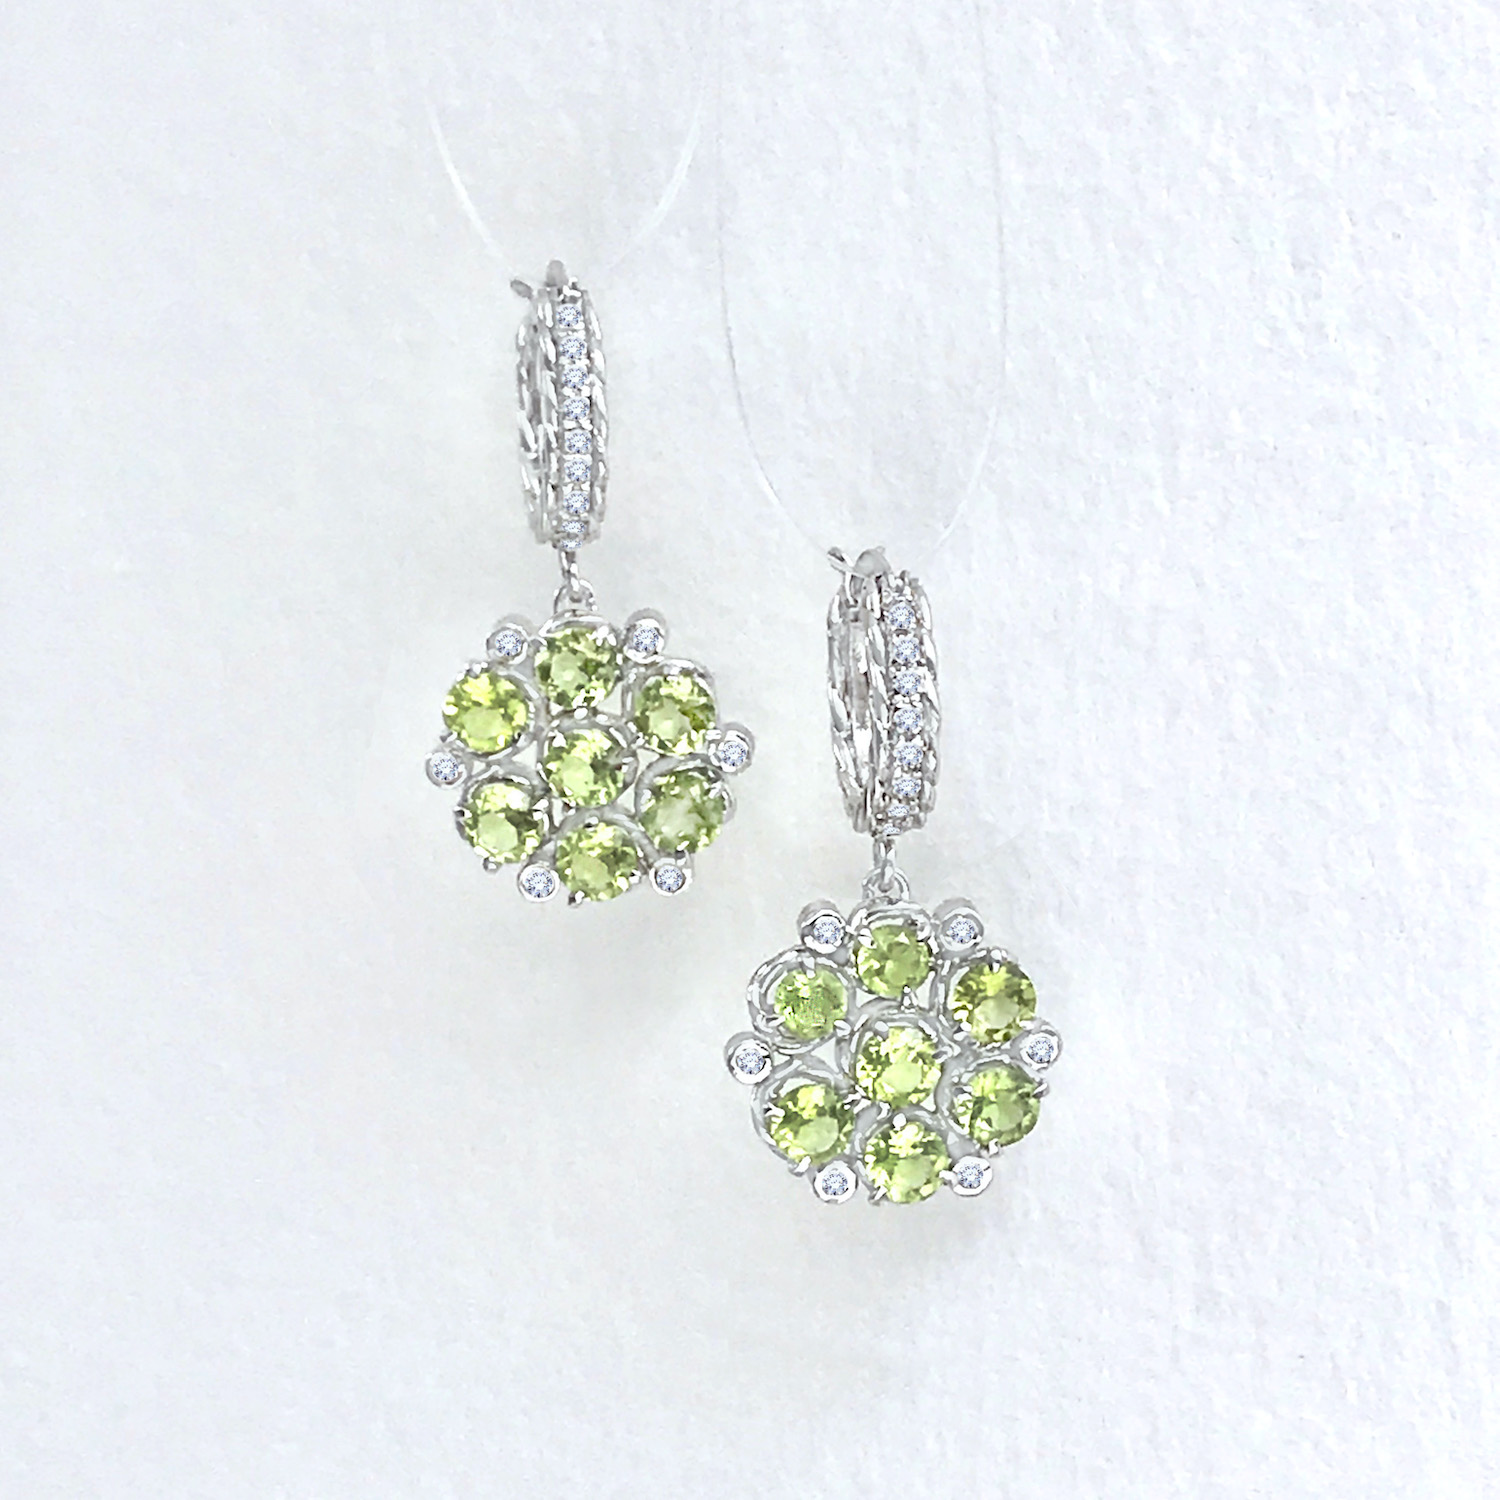 aphrodite-peridot-bouquet-cluster-dangle-earrings-14k-18k-jewelyrie_6843